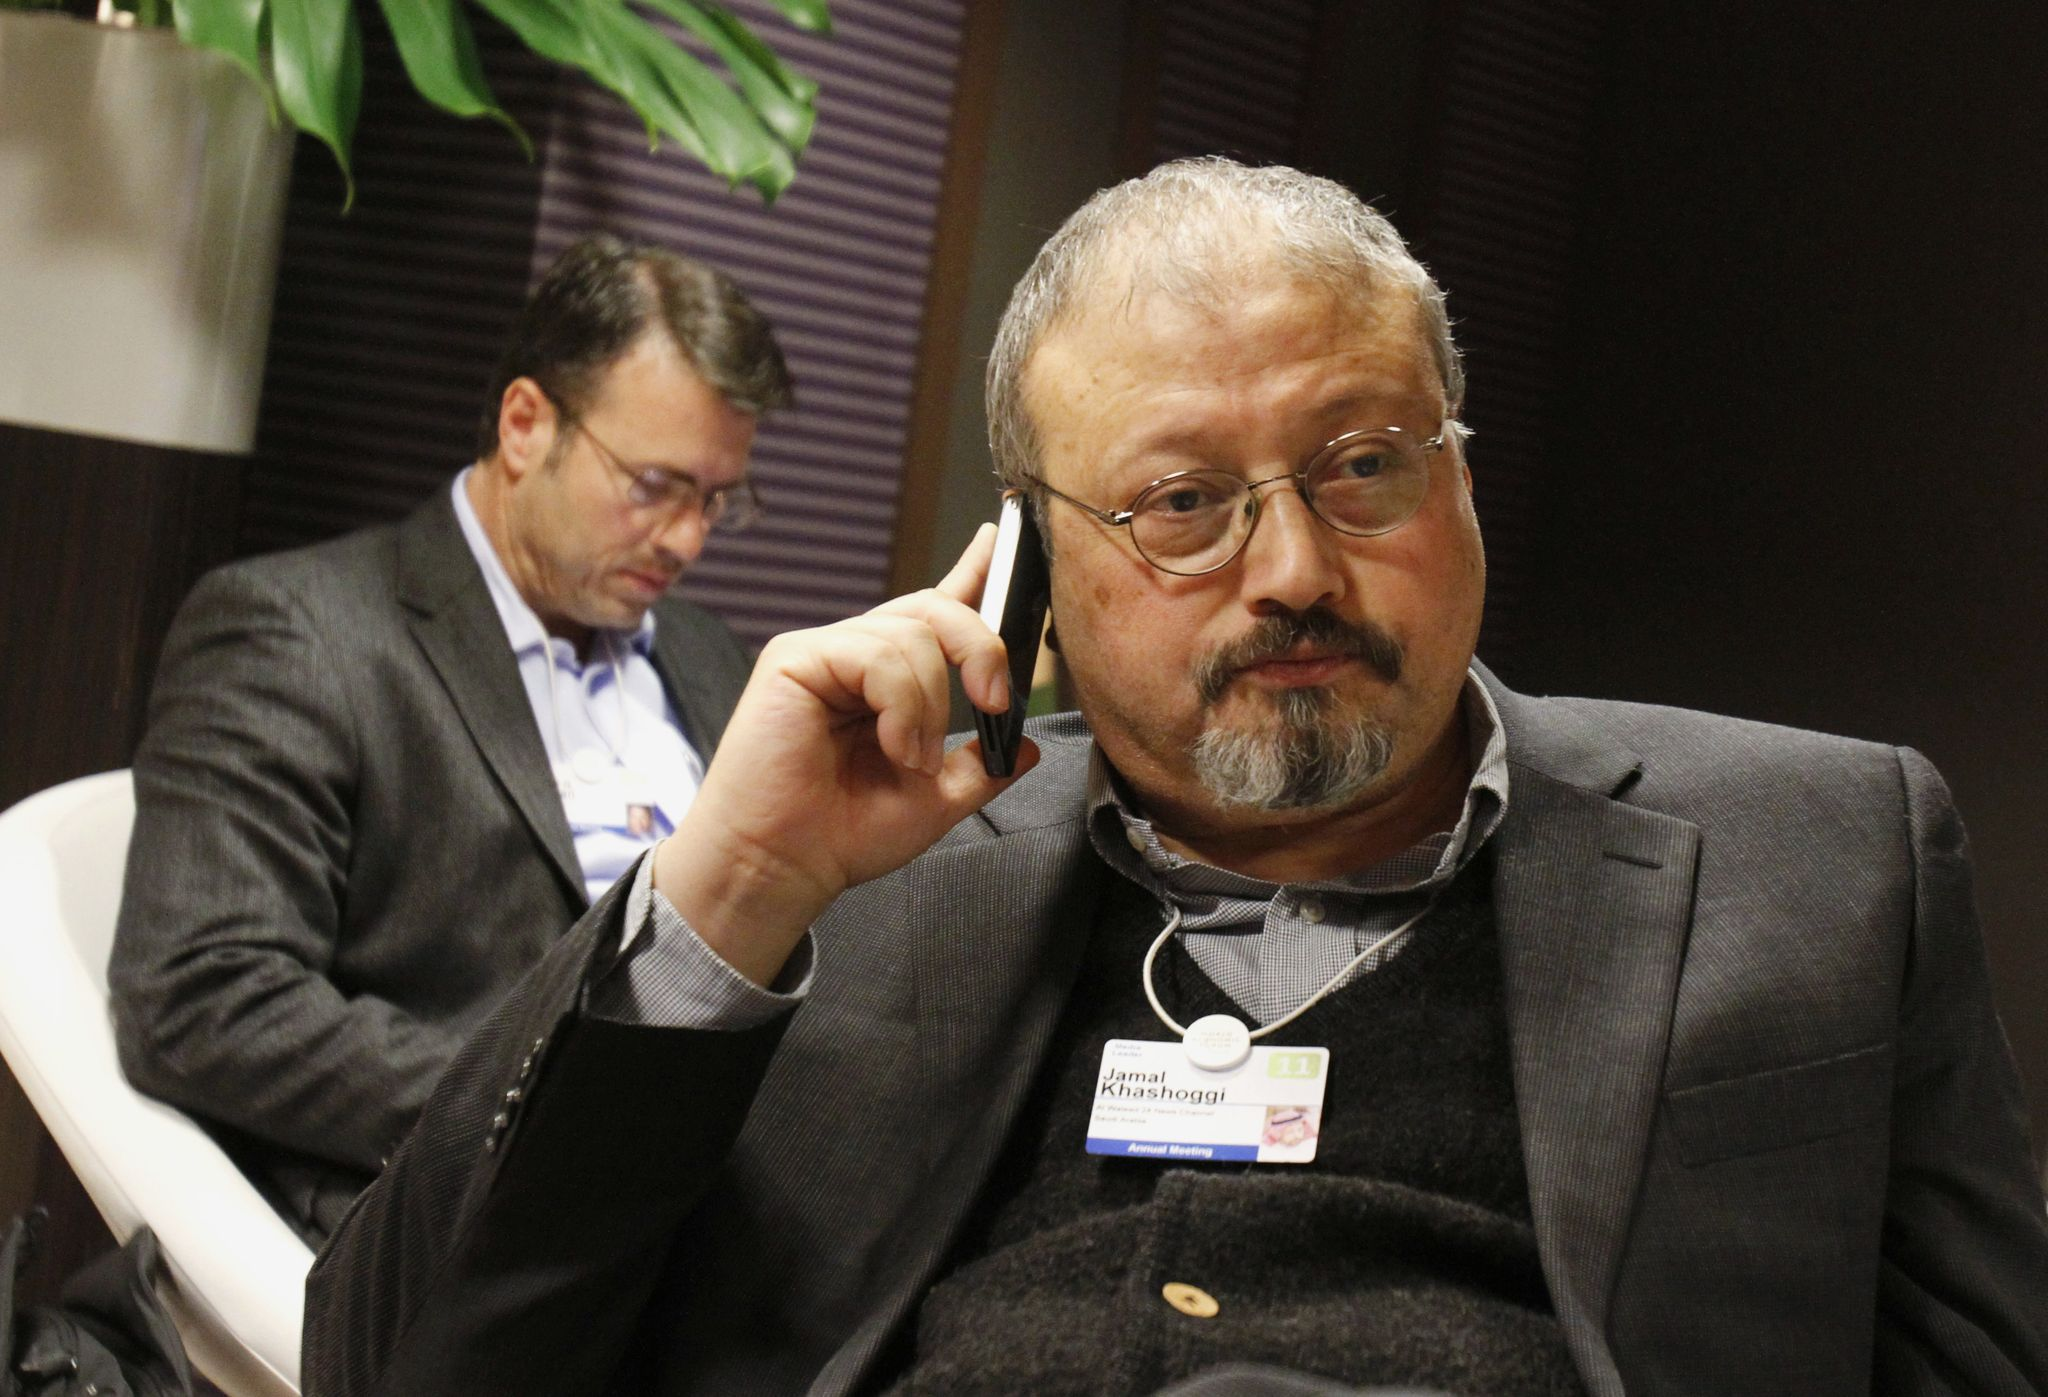 CIA concludes Saudi crown prince ordered Khashoggi murder, report claims